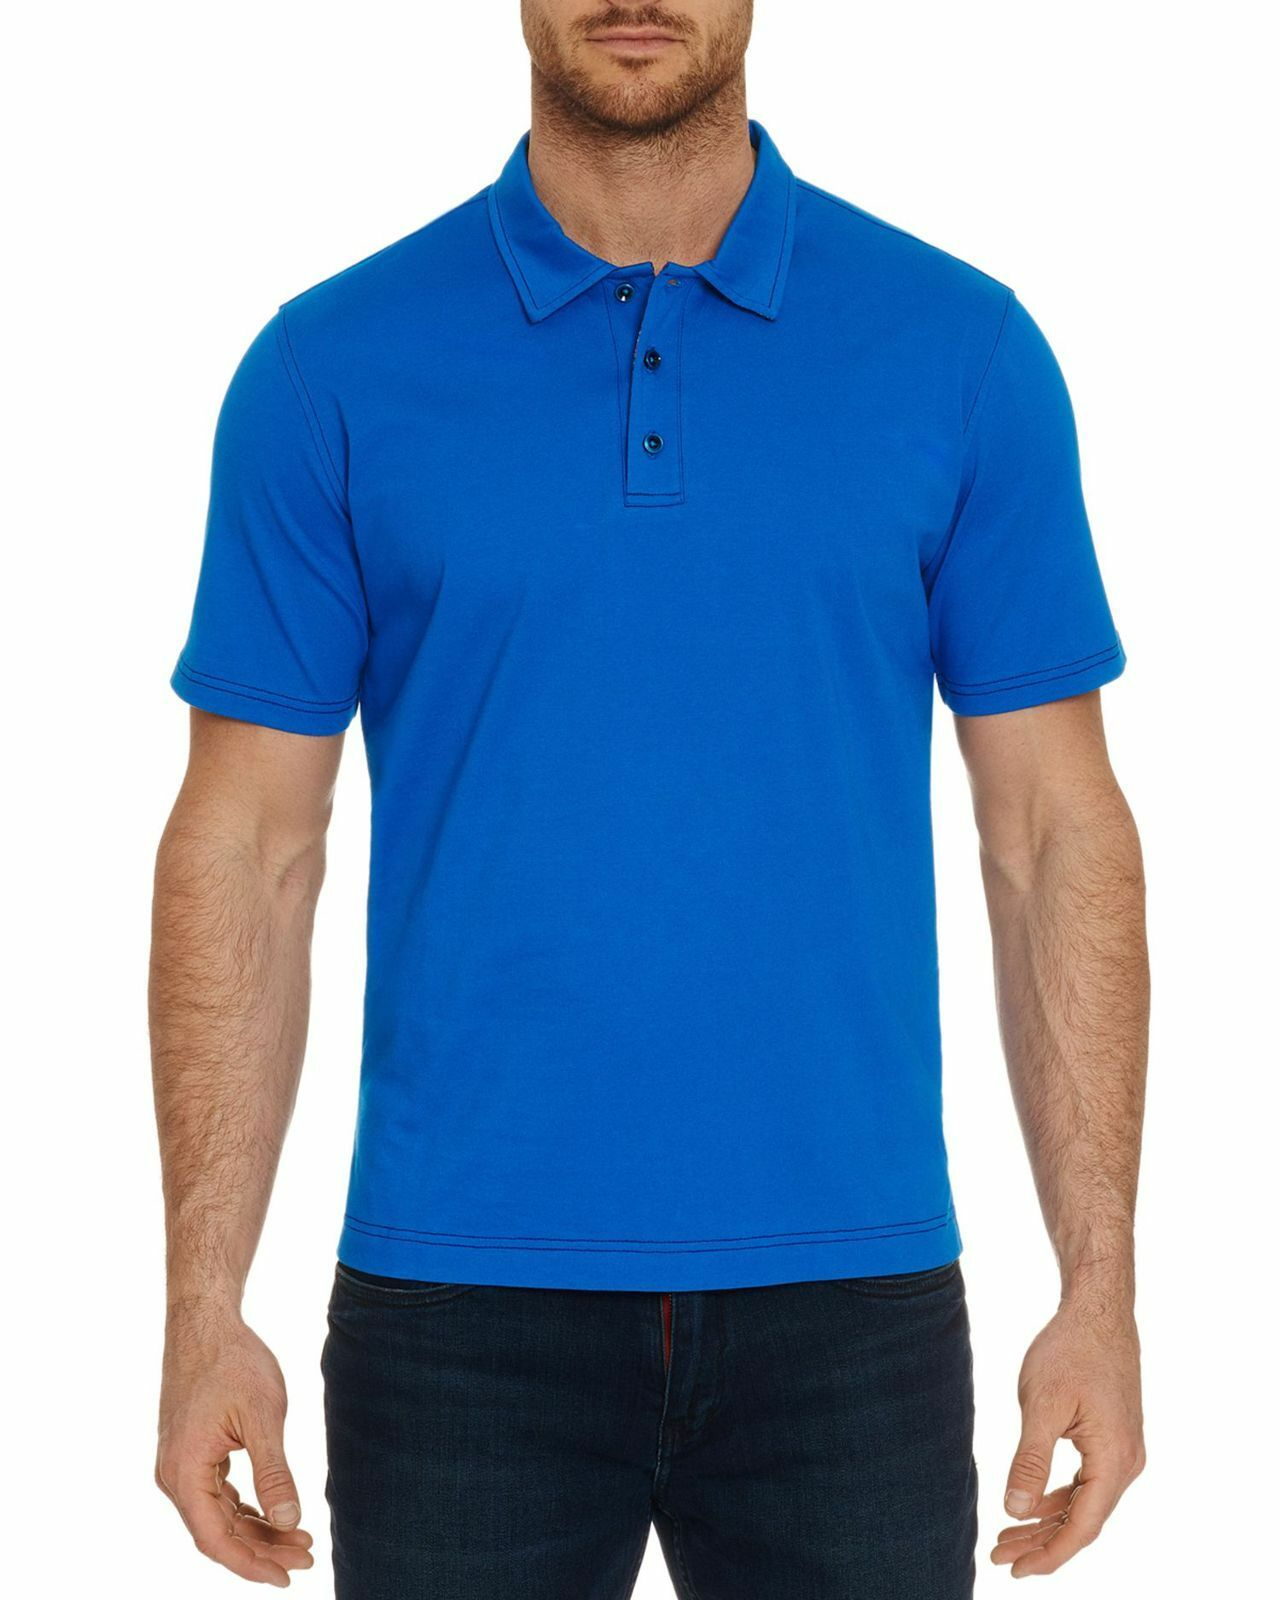 6ad4365a97e0c ROBERT GRAHAM Mens blueE SHORT SLEEVE POLO BUTTON COTTON SHIRT L FIT  CLASSIC nstwgg1436-Casual Shirts   Tops